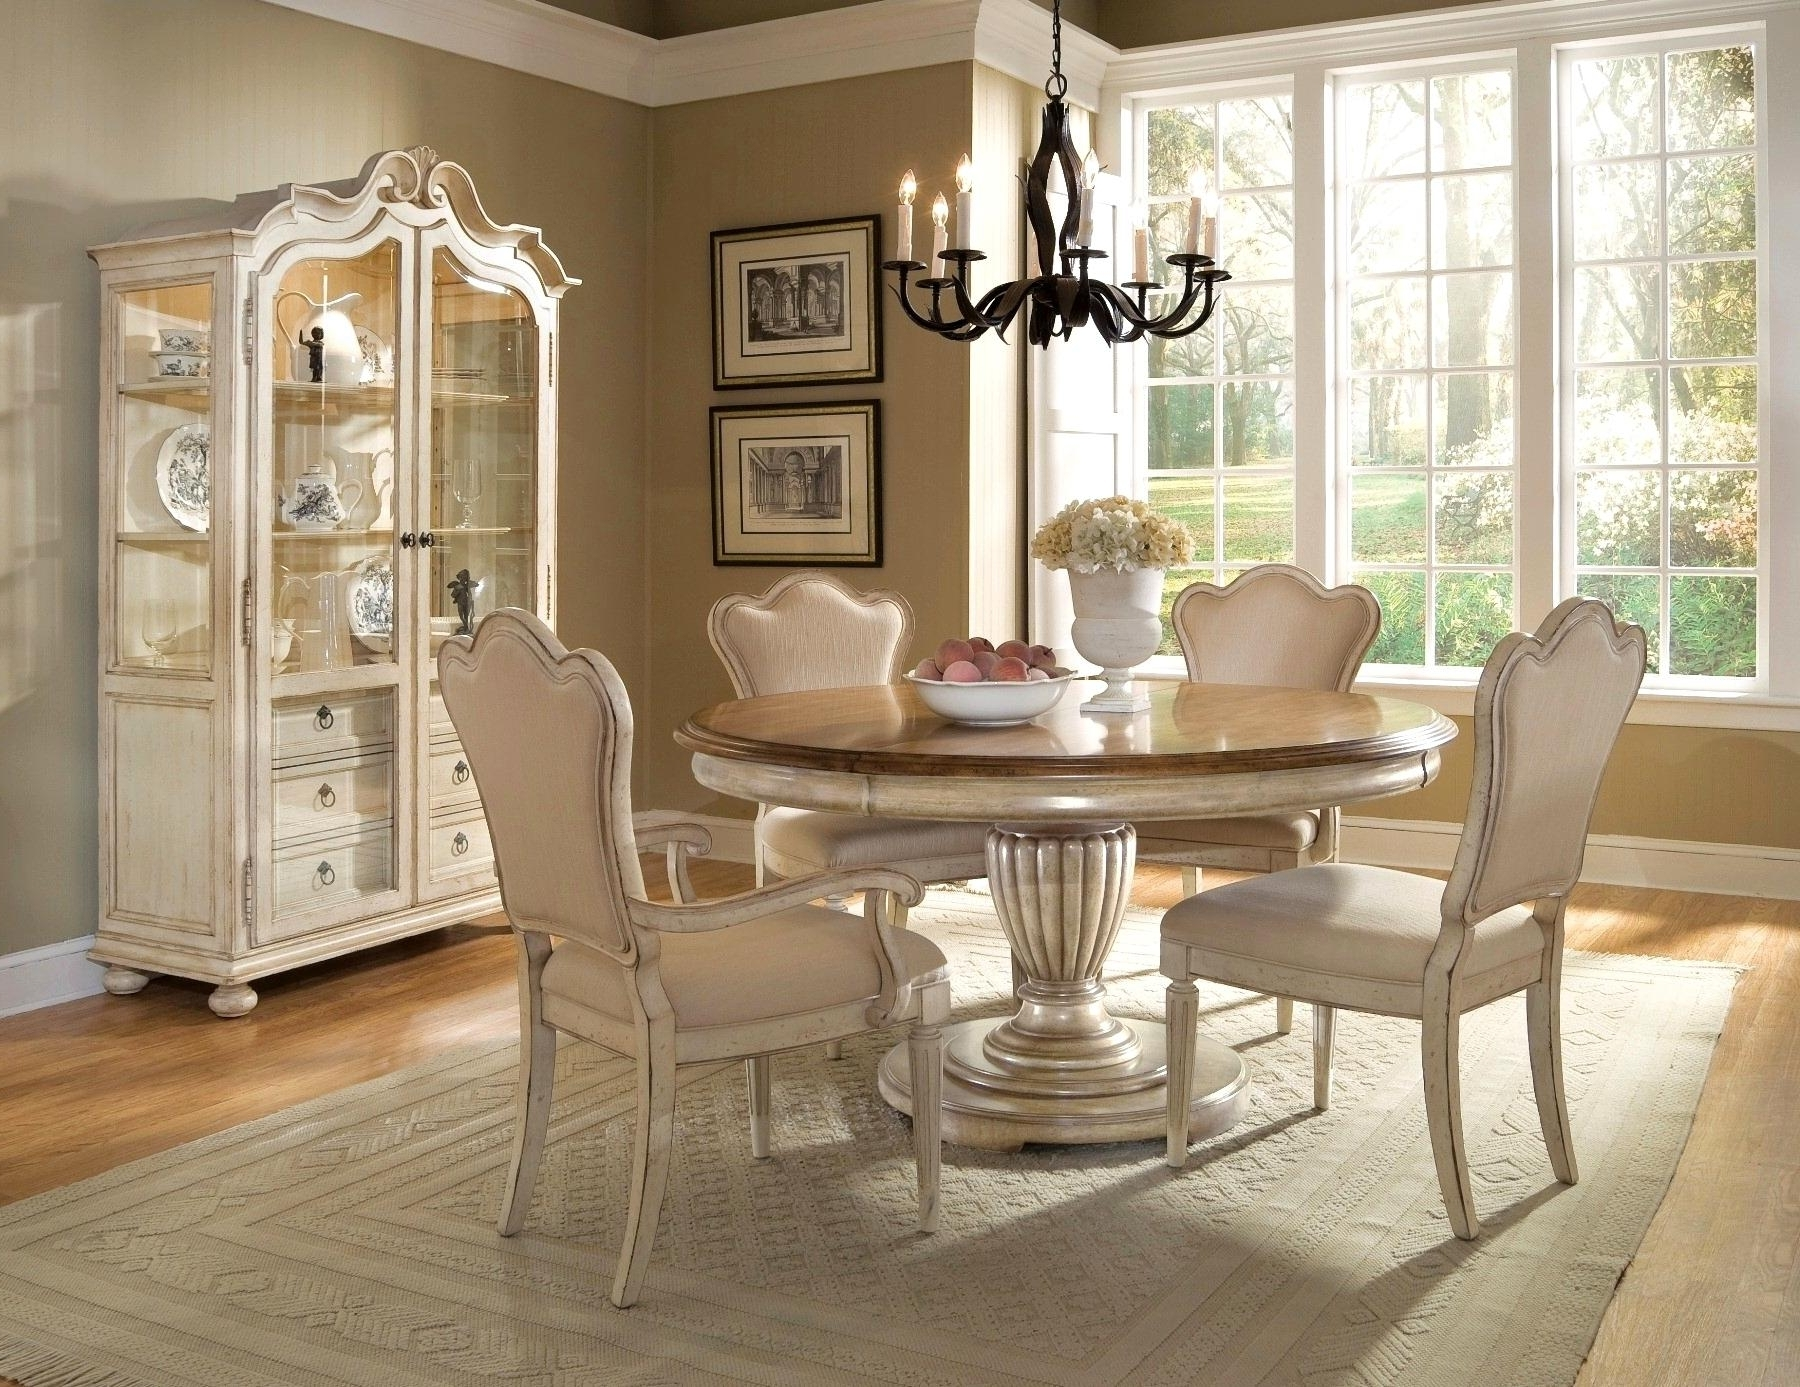 Cream Dining Tables And Chairs Pertaining To Most Recent Breathtaking Cream Dining Tables Chairs Luxurius Home Gorgeous Round (View 5 of 25)